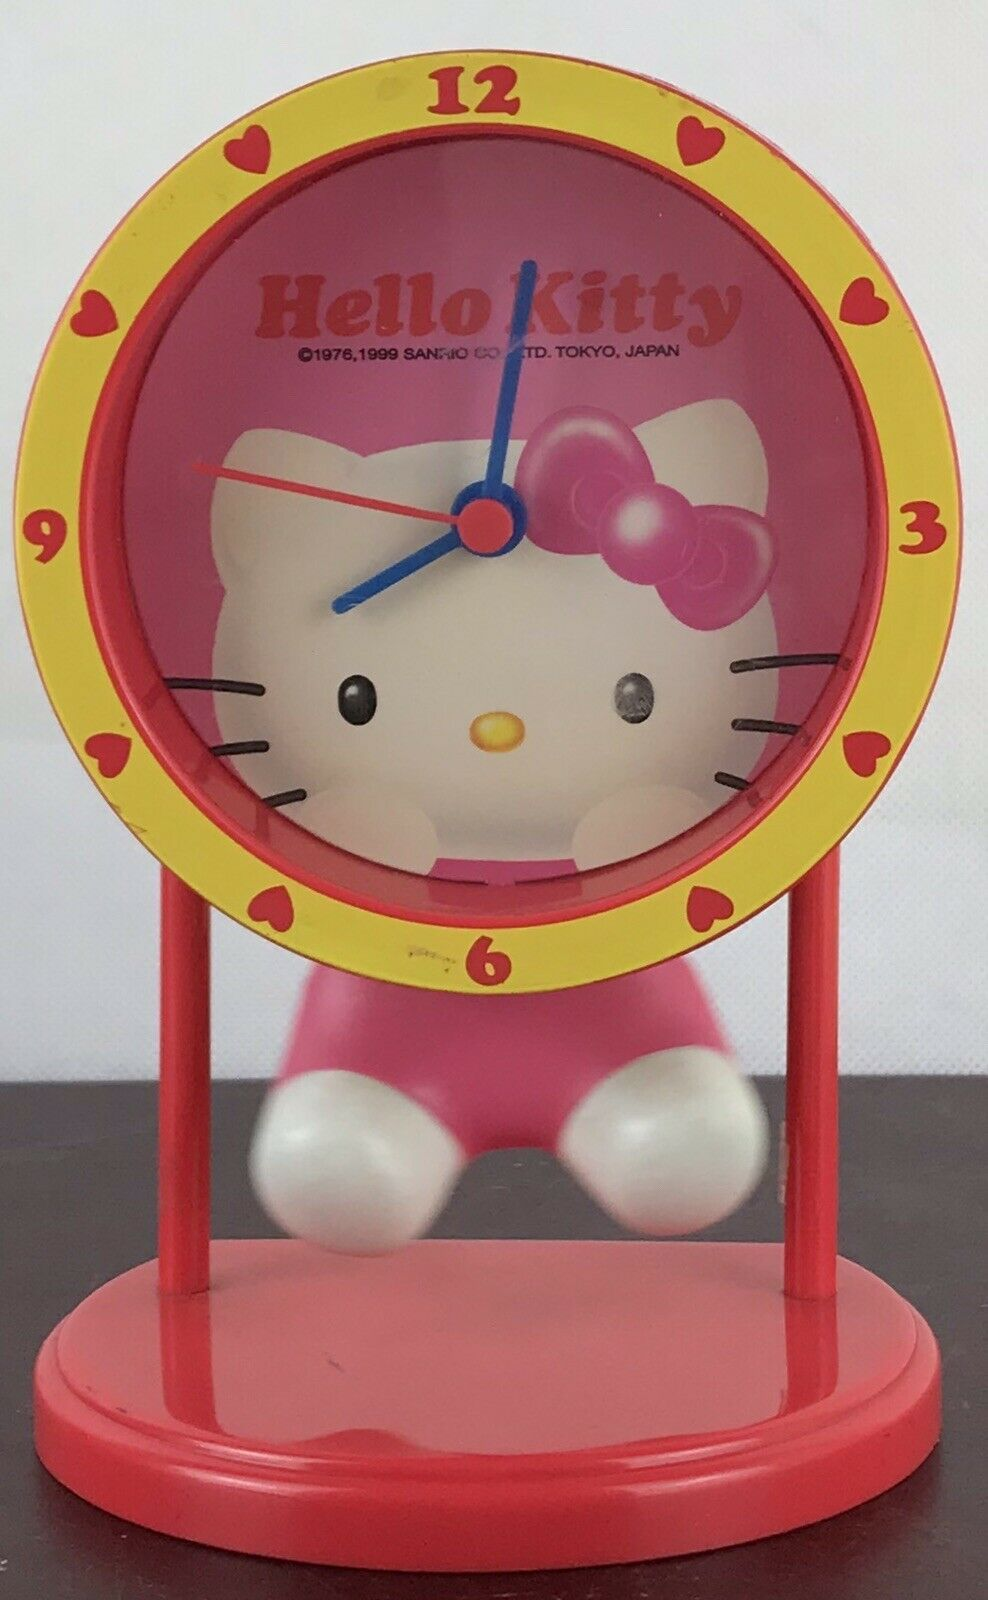 Primary image for Hello Kitty Sanrio 1976 Clock( Untested)